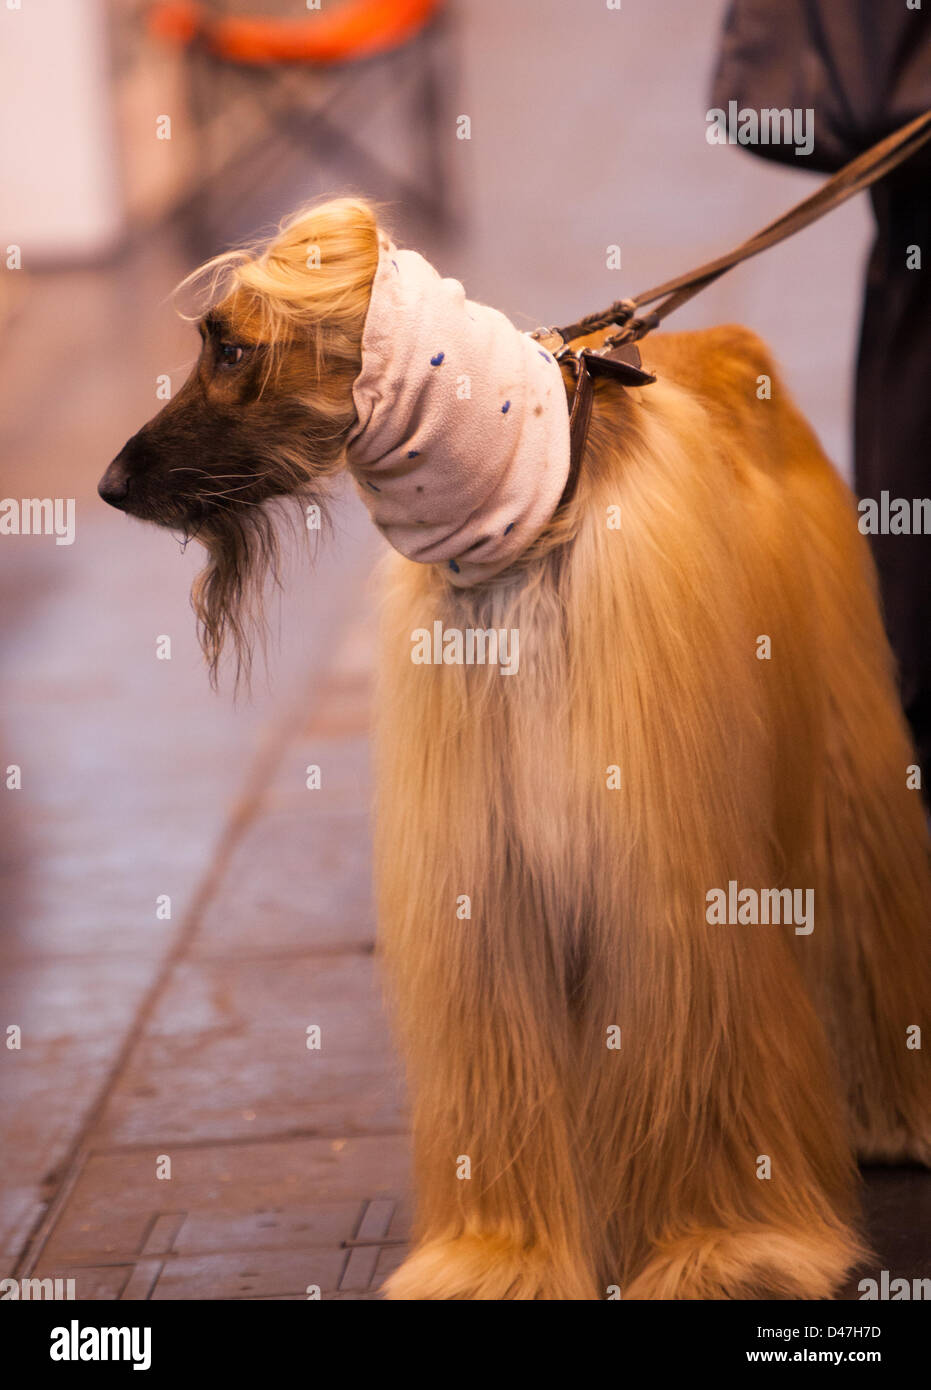 NEC, Birmingham, UK. 7th March 2103. Striking a handsome pose at Crufts. Credit:  Chris Gibson / Alamy Live News - Stock Image